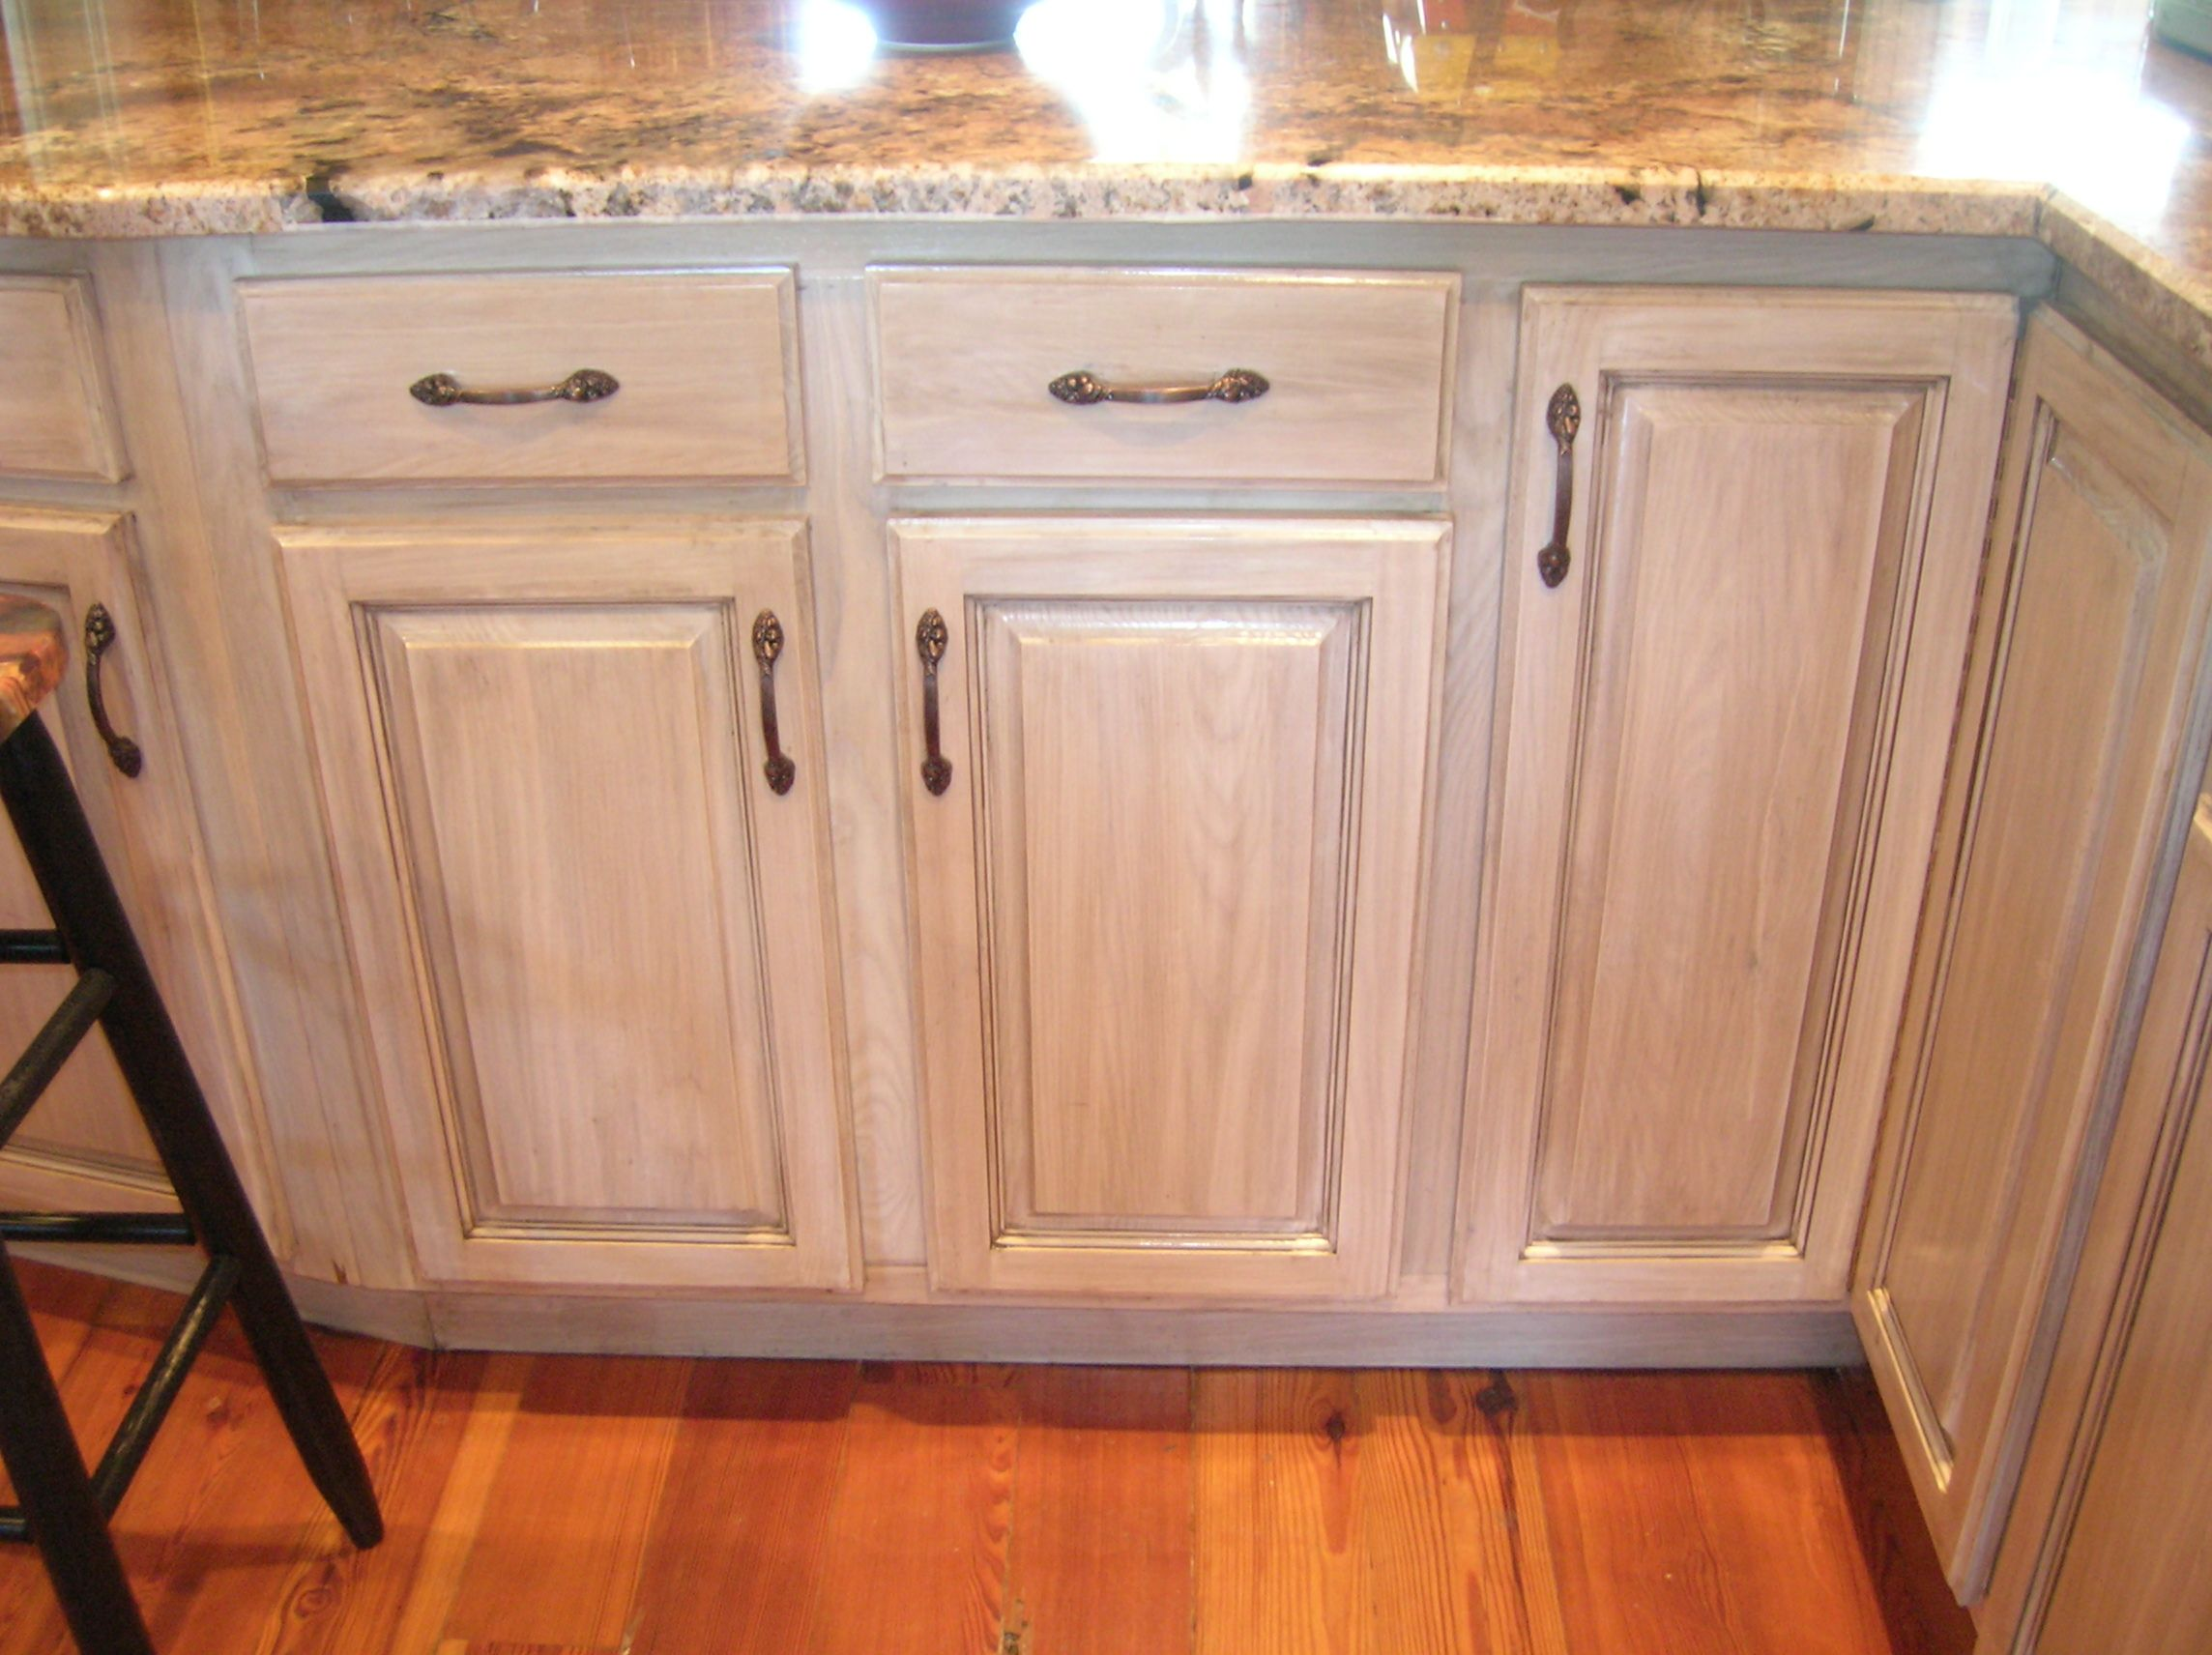 What Our Cabinets Might Look Like With Lightly Glazed Stain Pickled5 Jpg 2288 1712 Stained Kitchen Cabinets Oak Kitchen Cabinets Honey Oak Cabinets